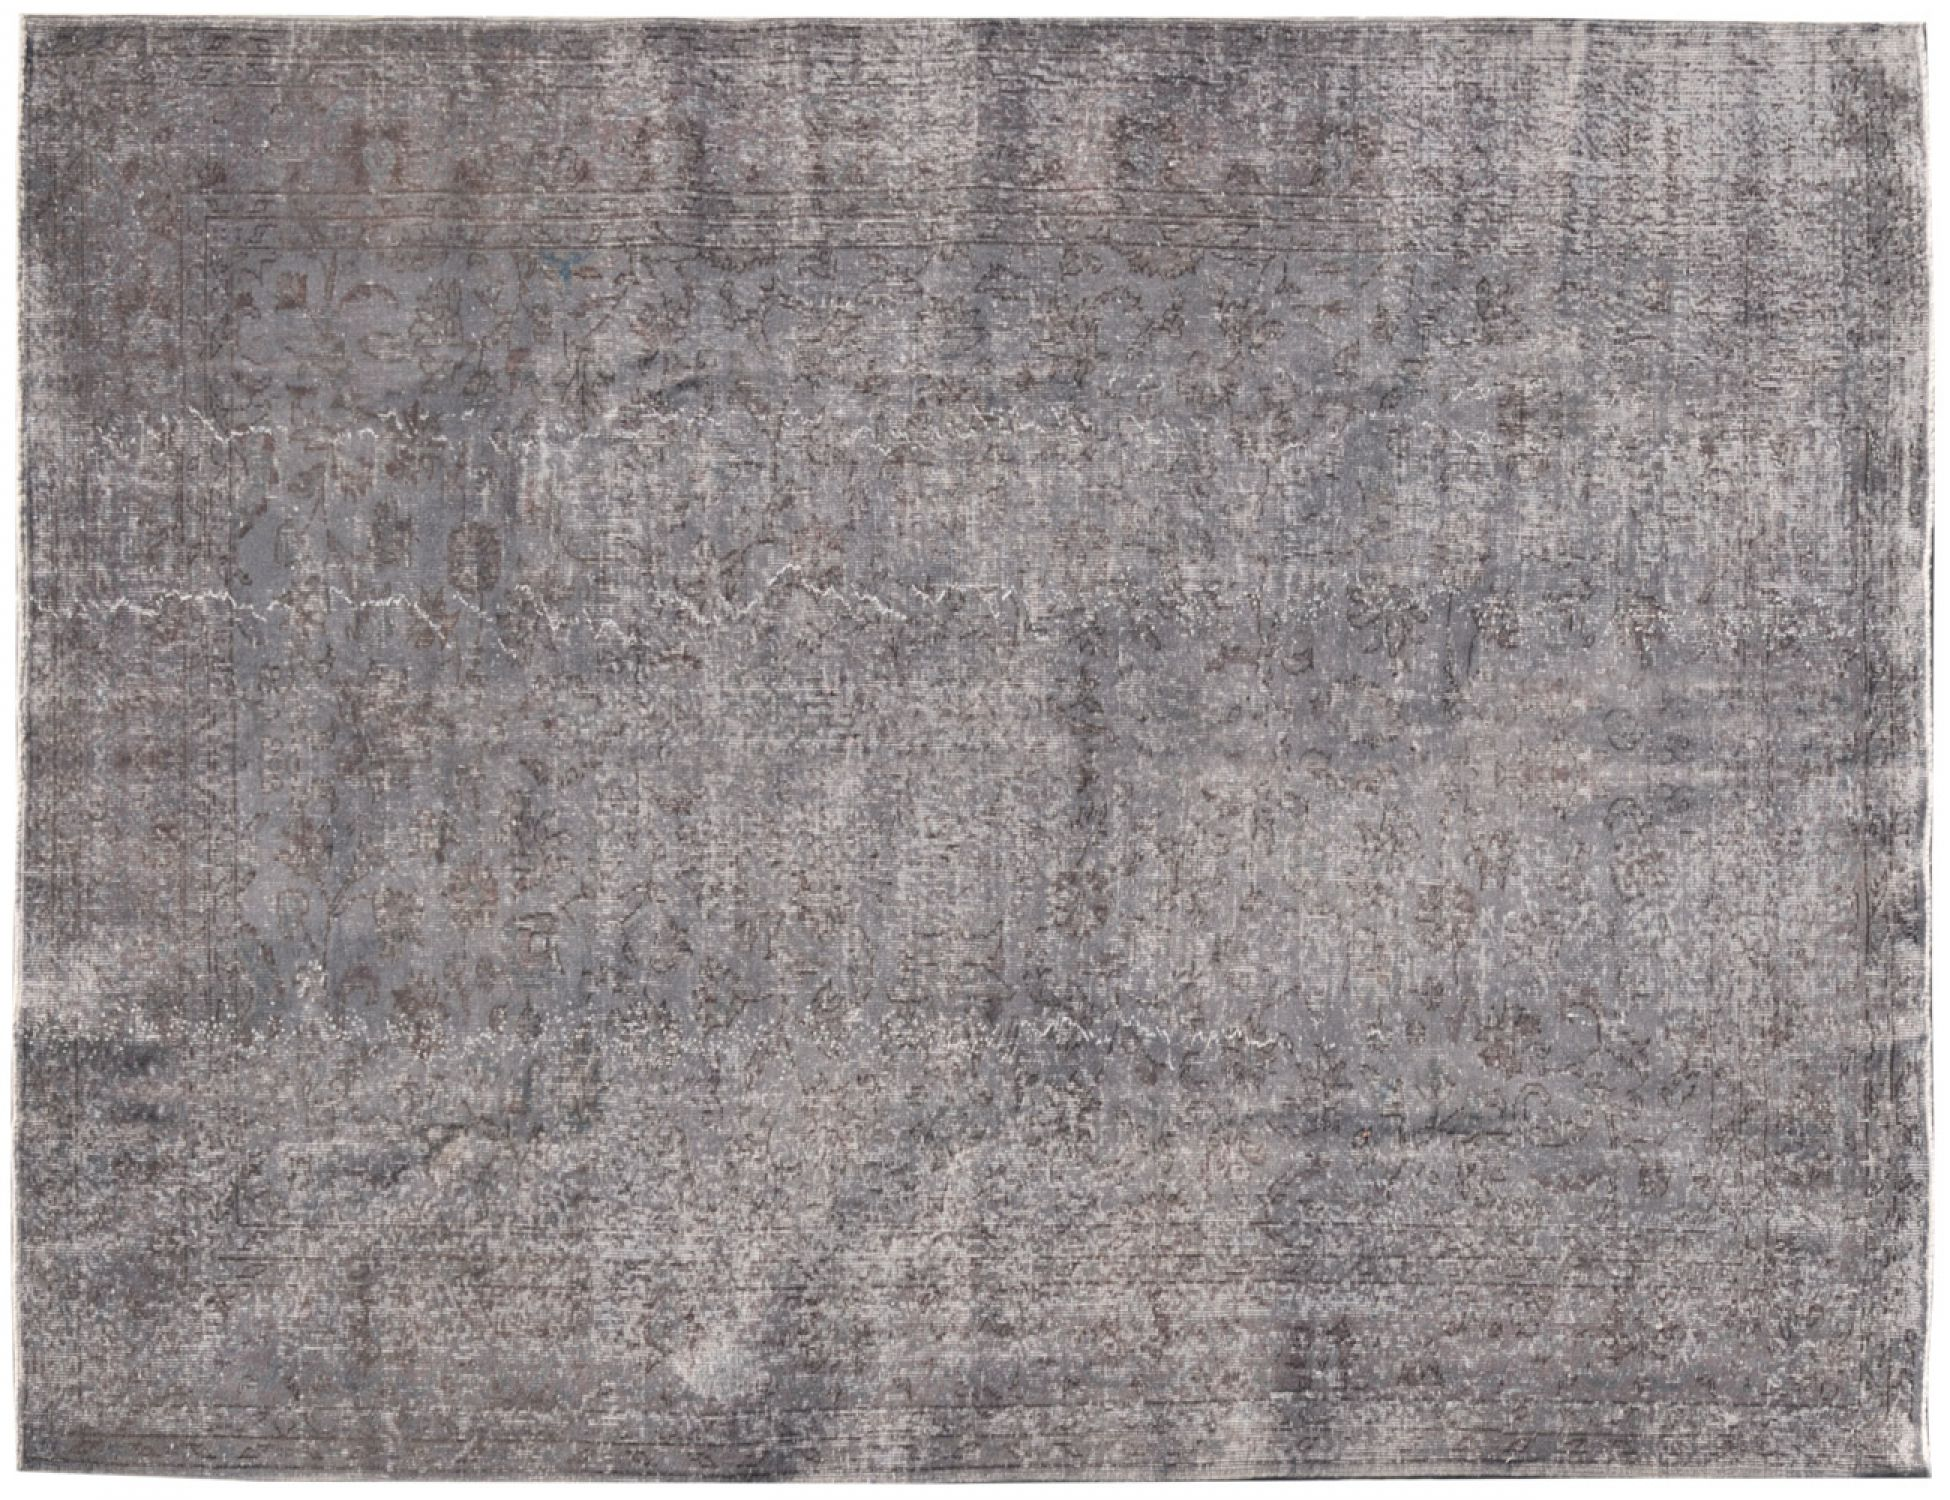 Vintage Carpet  grey <br/>314 x 214 cm